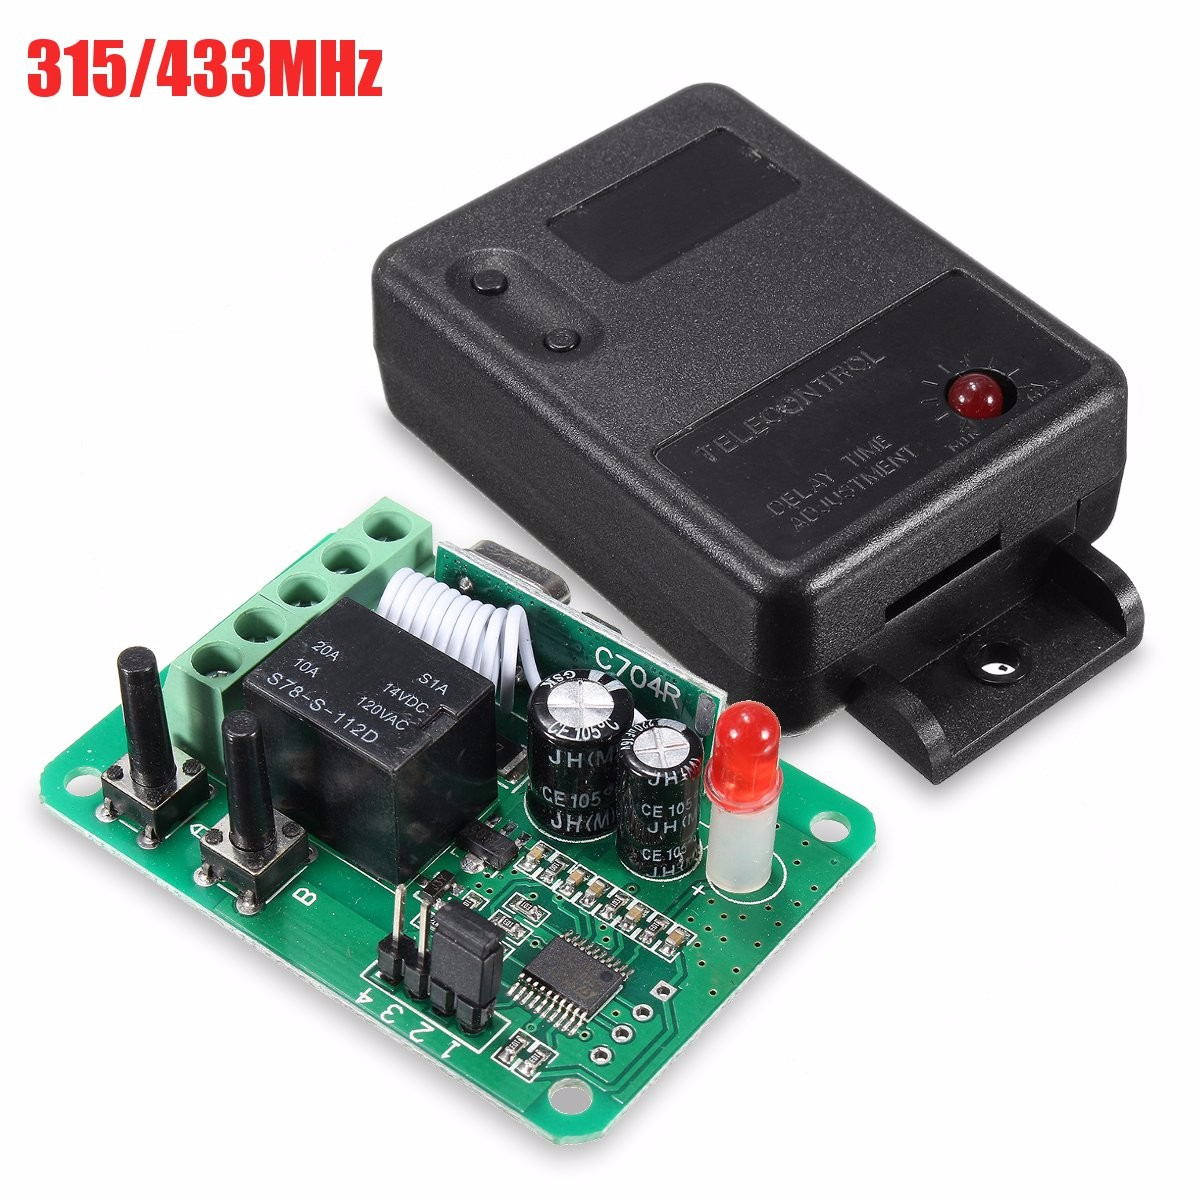 Dc12v 1ch 315 433mhz Wireless Time Delay Relay Rf Remote Control The Equipment Is Mode You 355a0592 B8ba 4356 89a3 5b5ac8adfd95